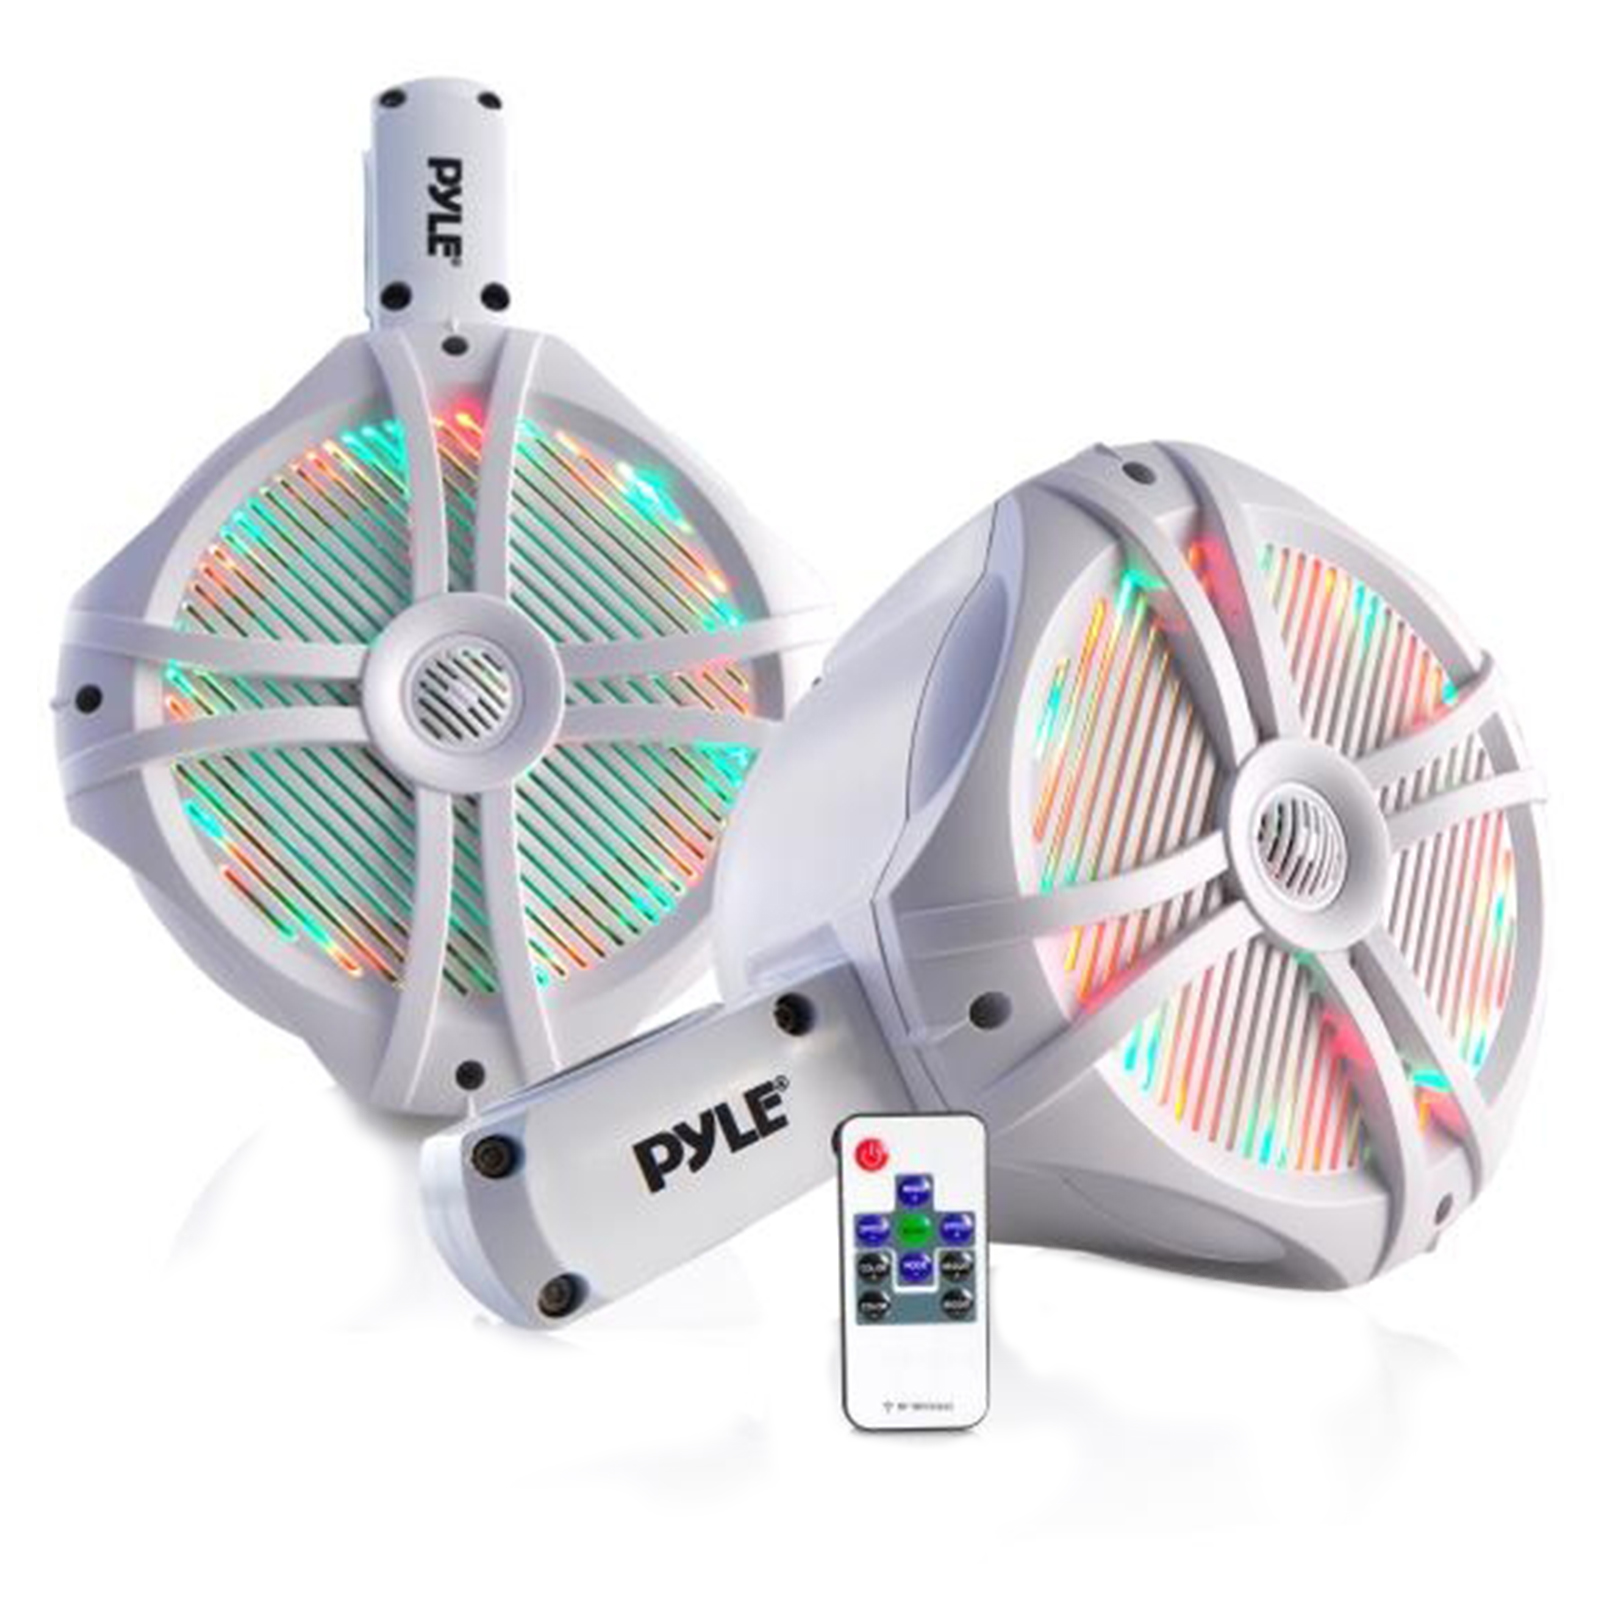 "Dual Marine Wakeboard Water Resistant Speakers, Built-in Programmable Multi-Color LED Lights, 8"" Tower Speakers,... by Pyle"